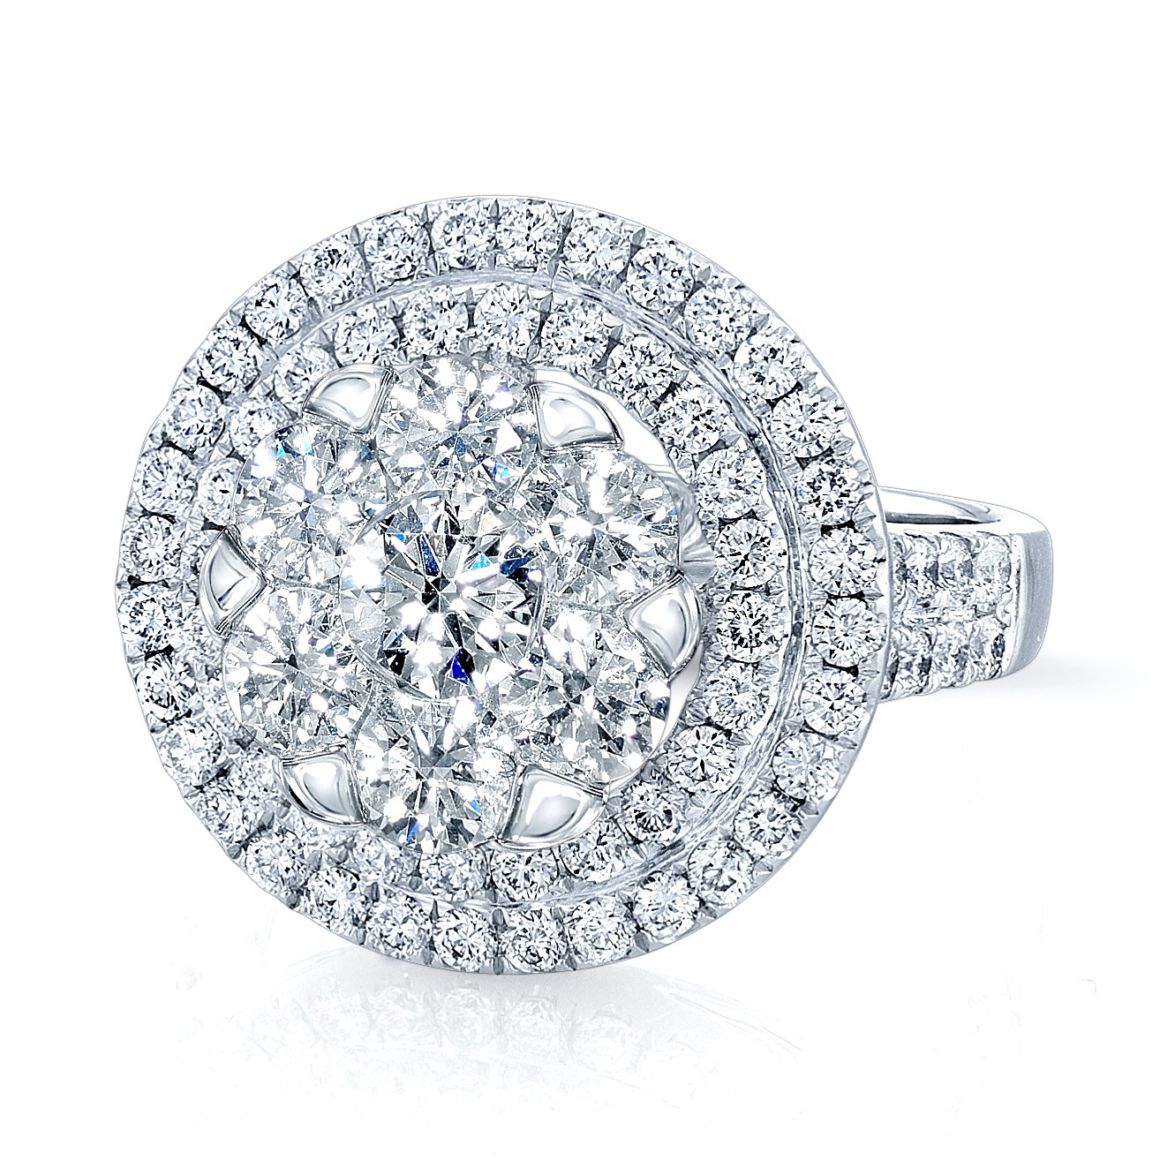 Engagement Ring by Coronet Diamonds